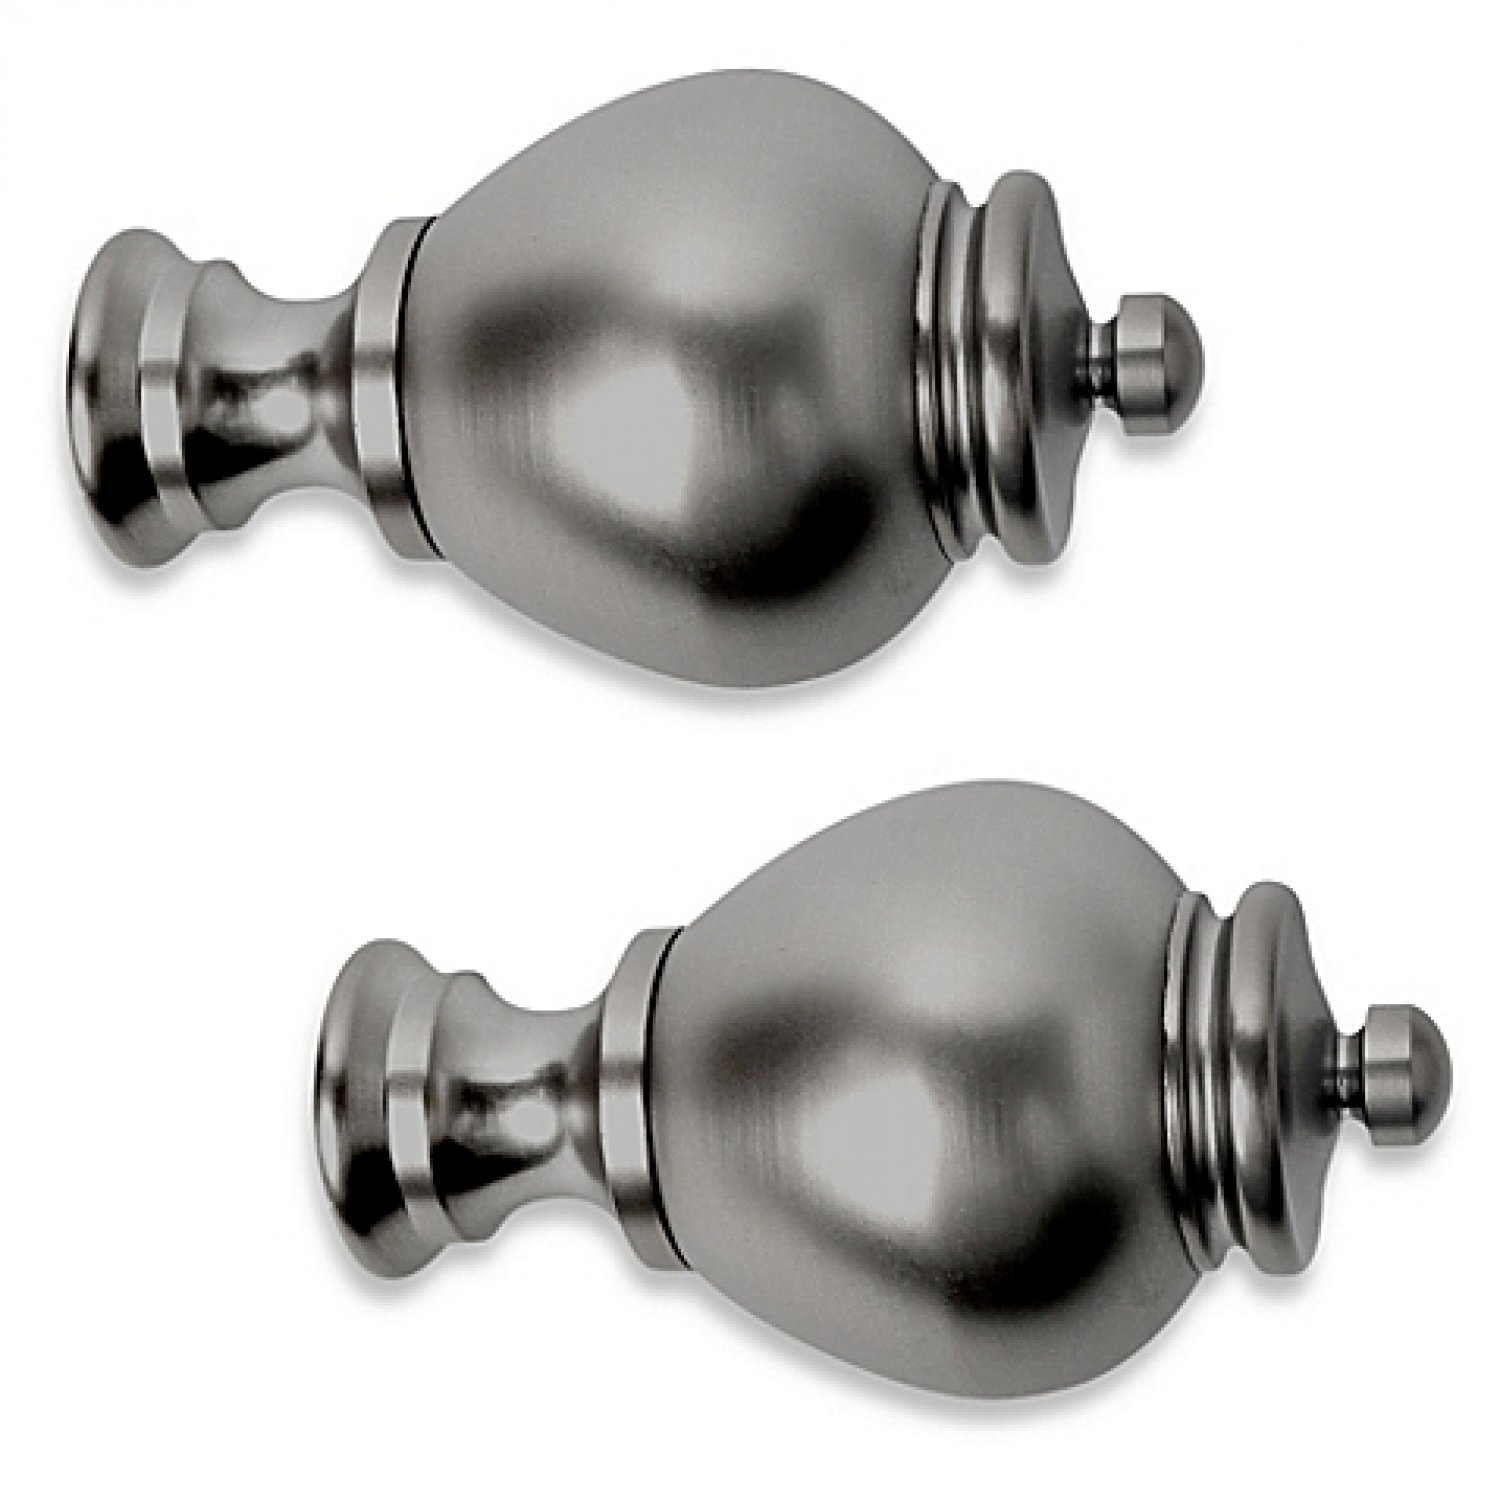 Cambria Premier Complete Apothecary Finial in Graphite (Set of 2)